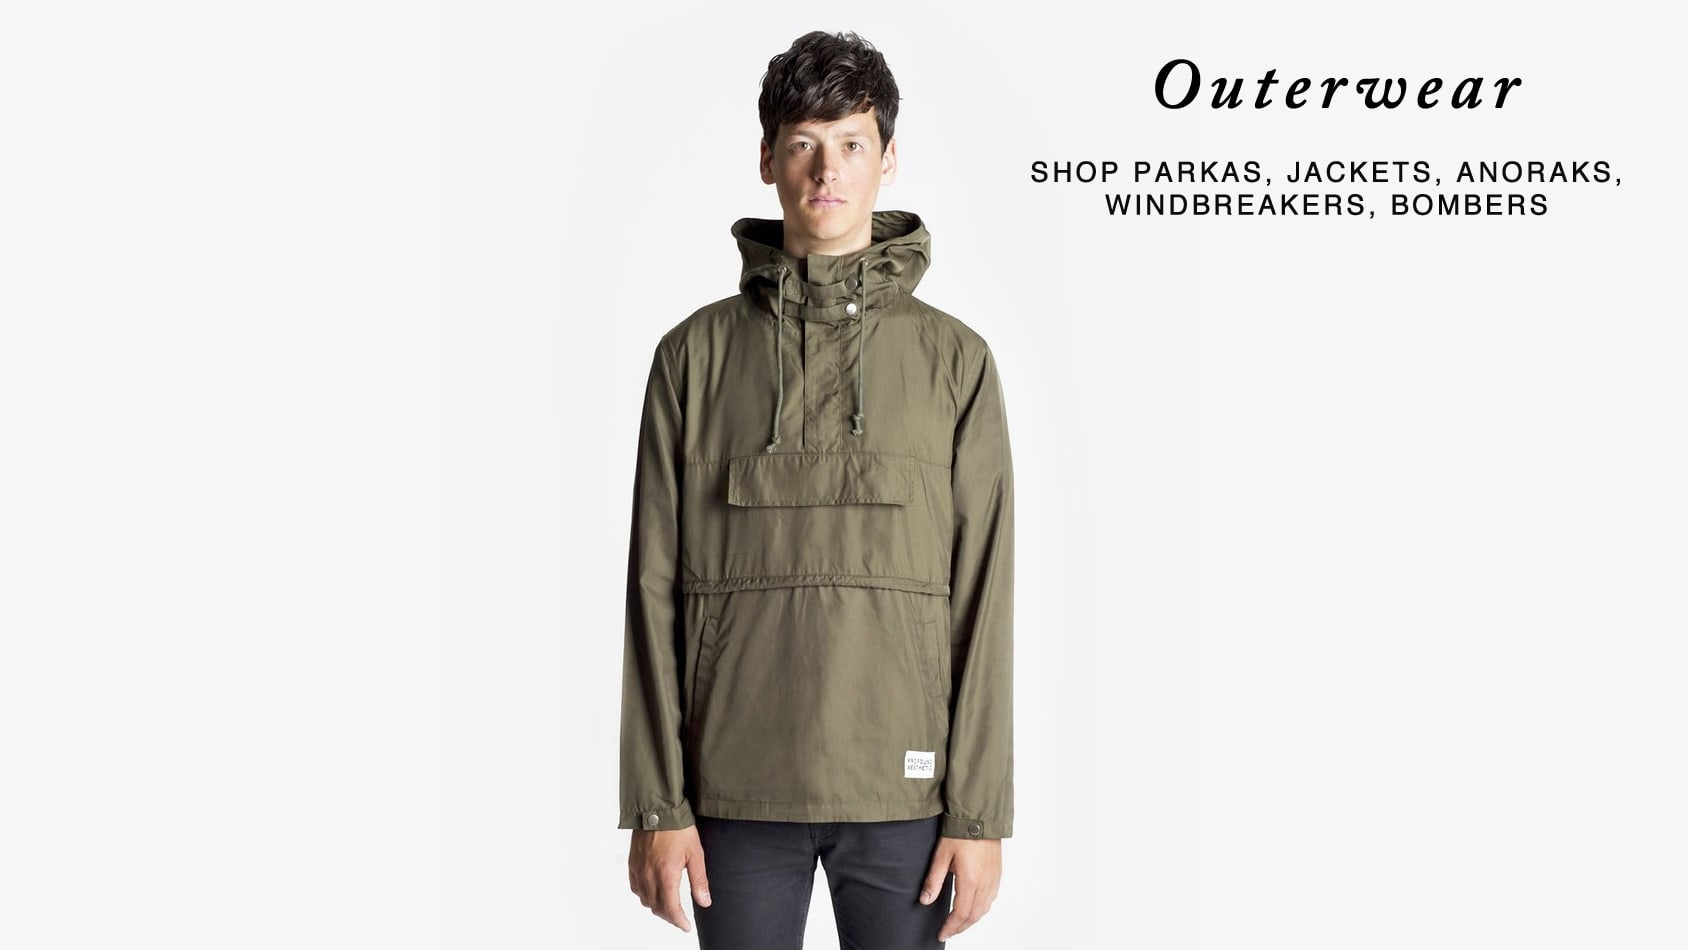 outerwear by profound aesthetic